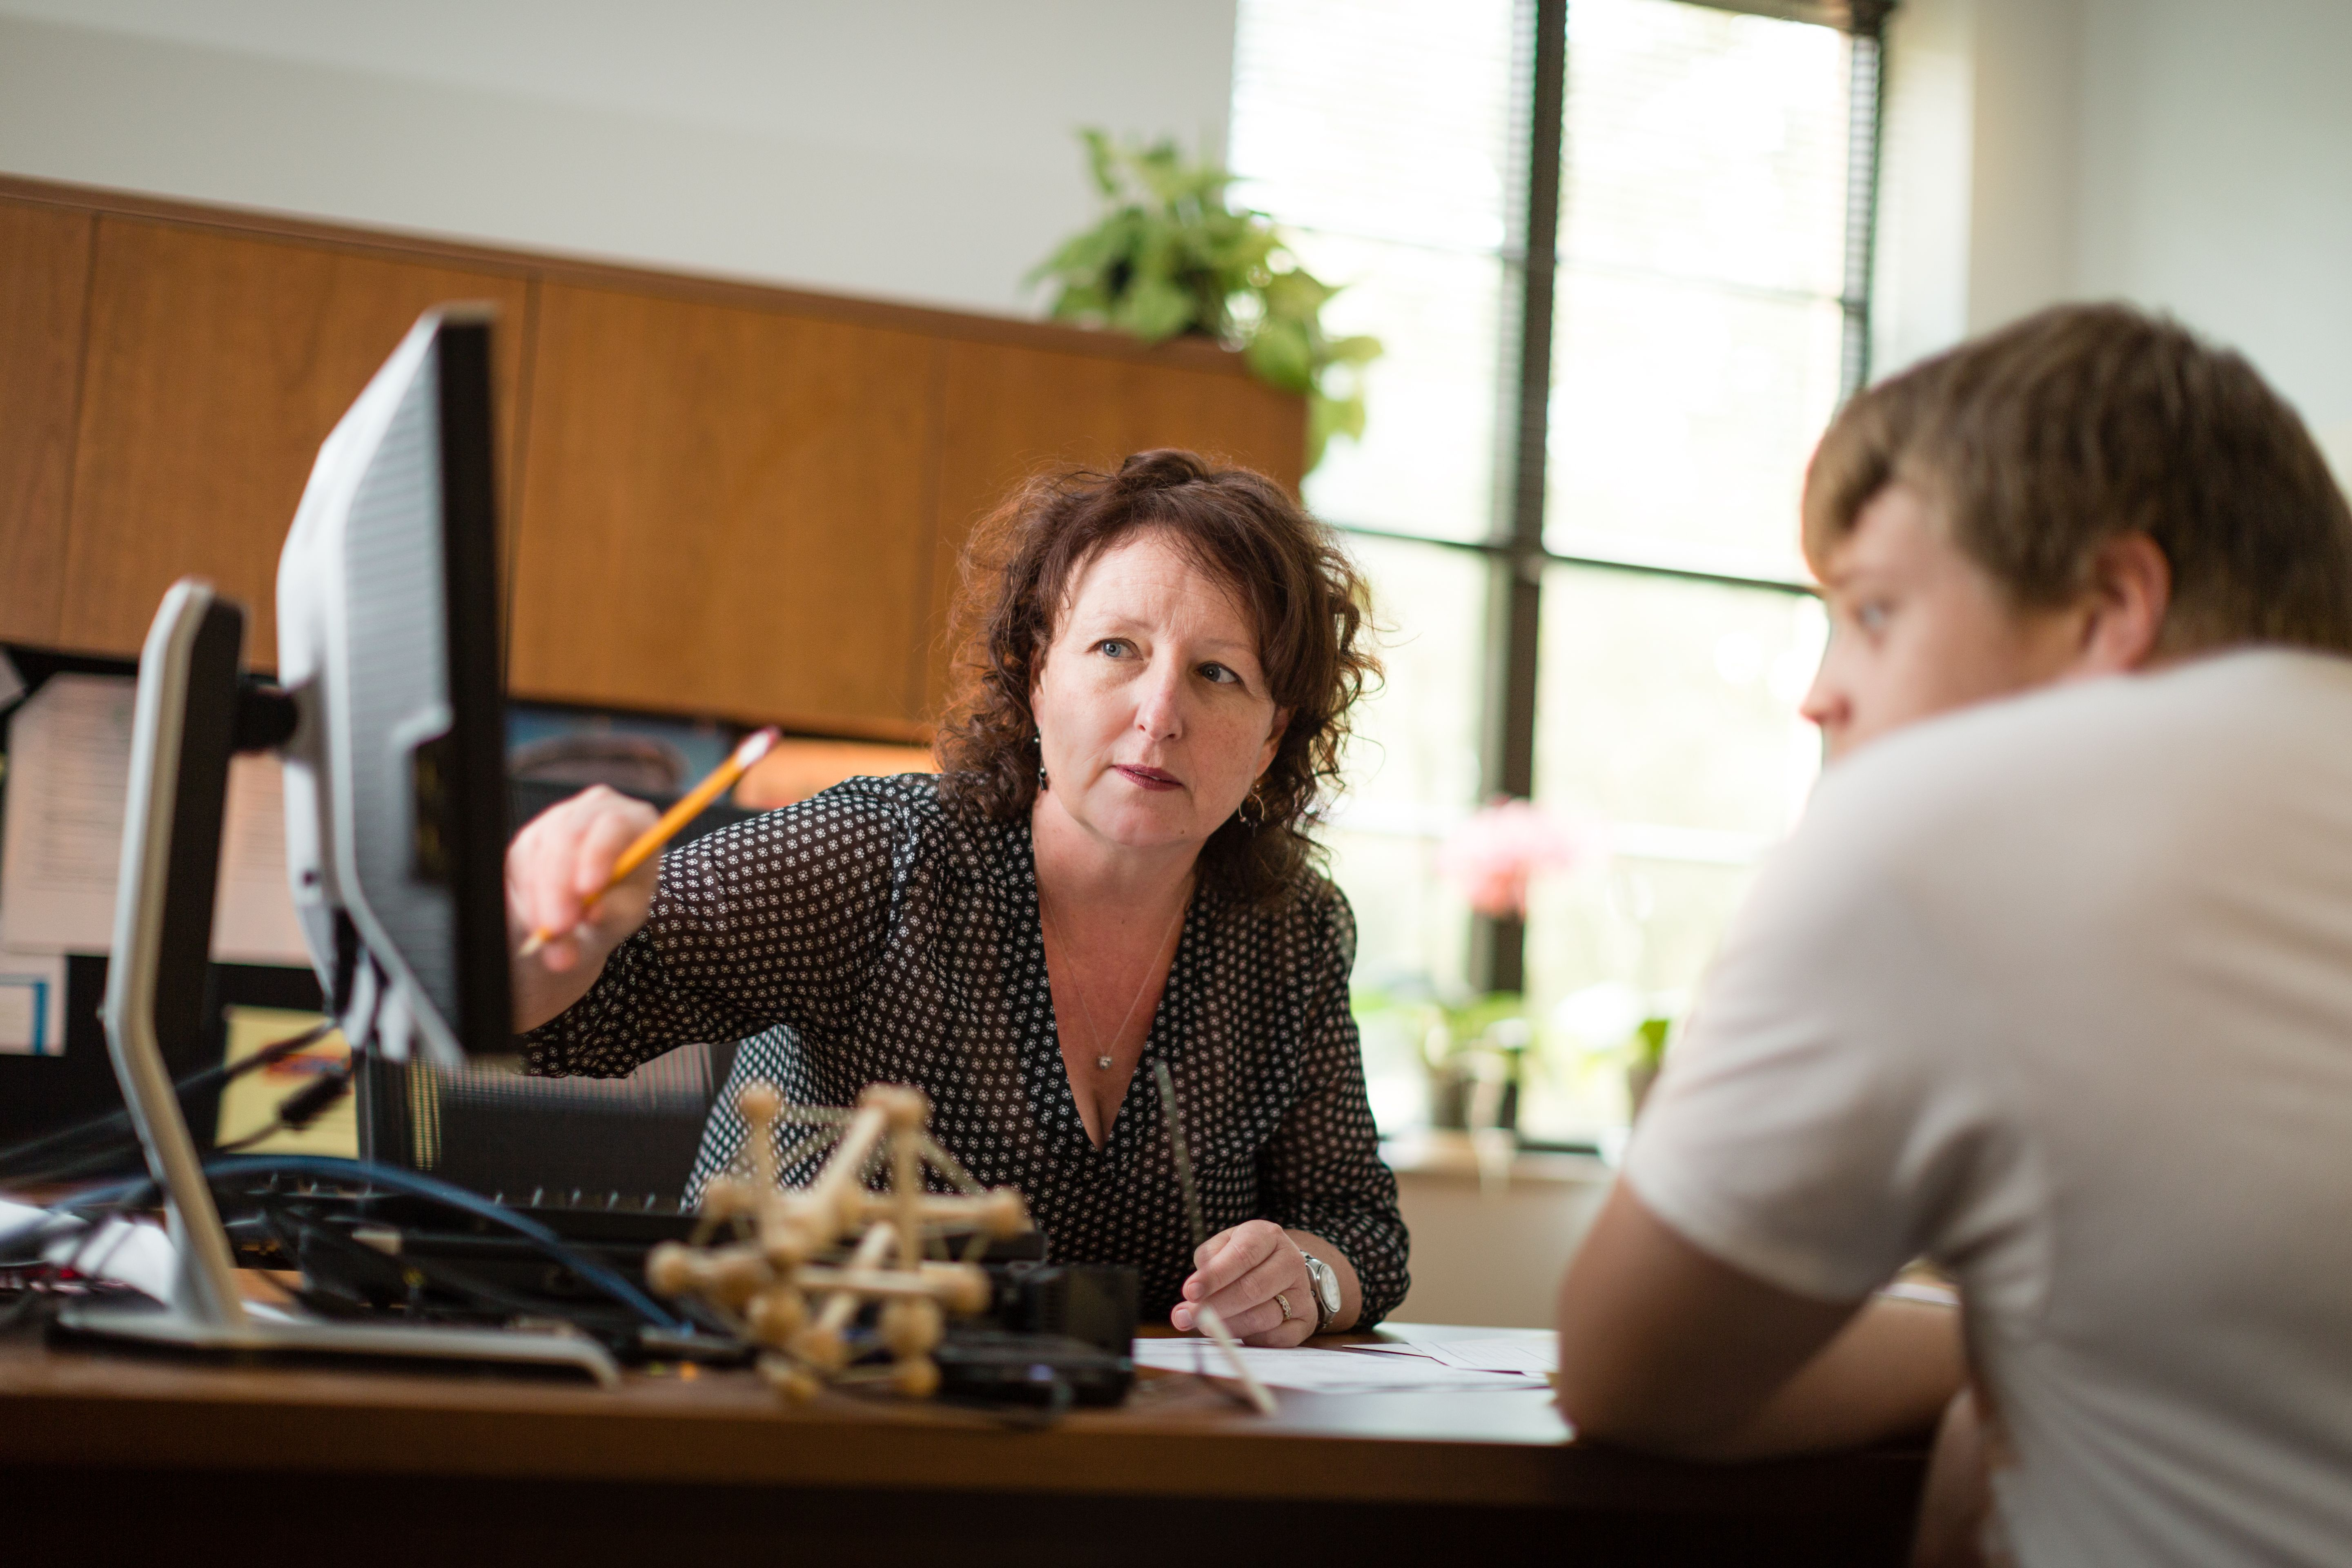 Biology professor Fiona Harper holds a one-on-one advising session in her office with a student.